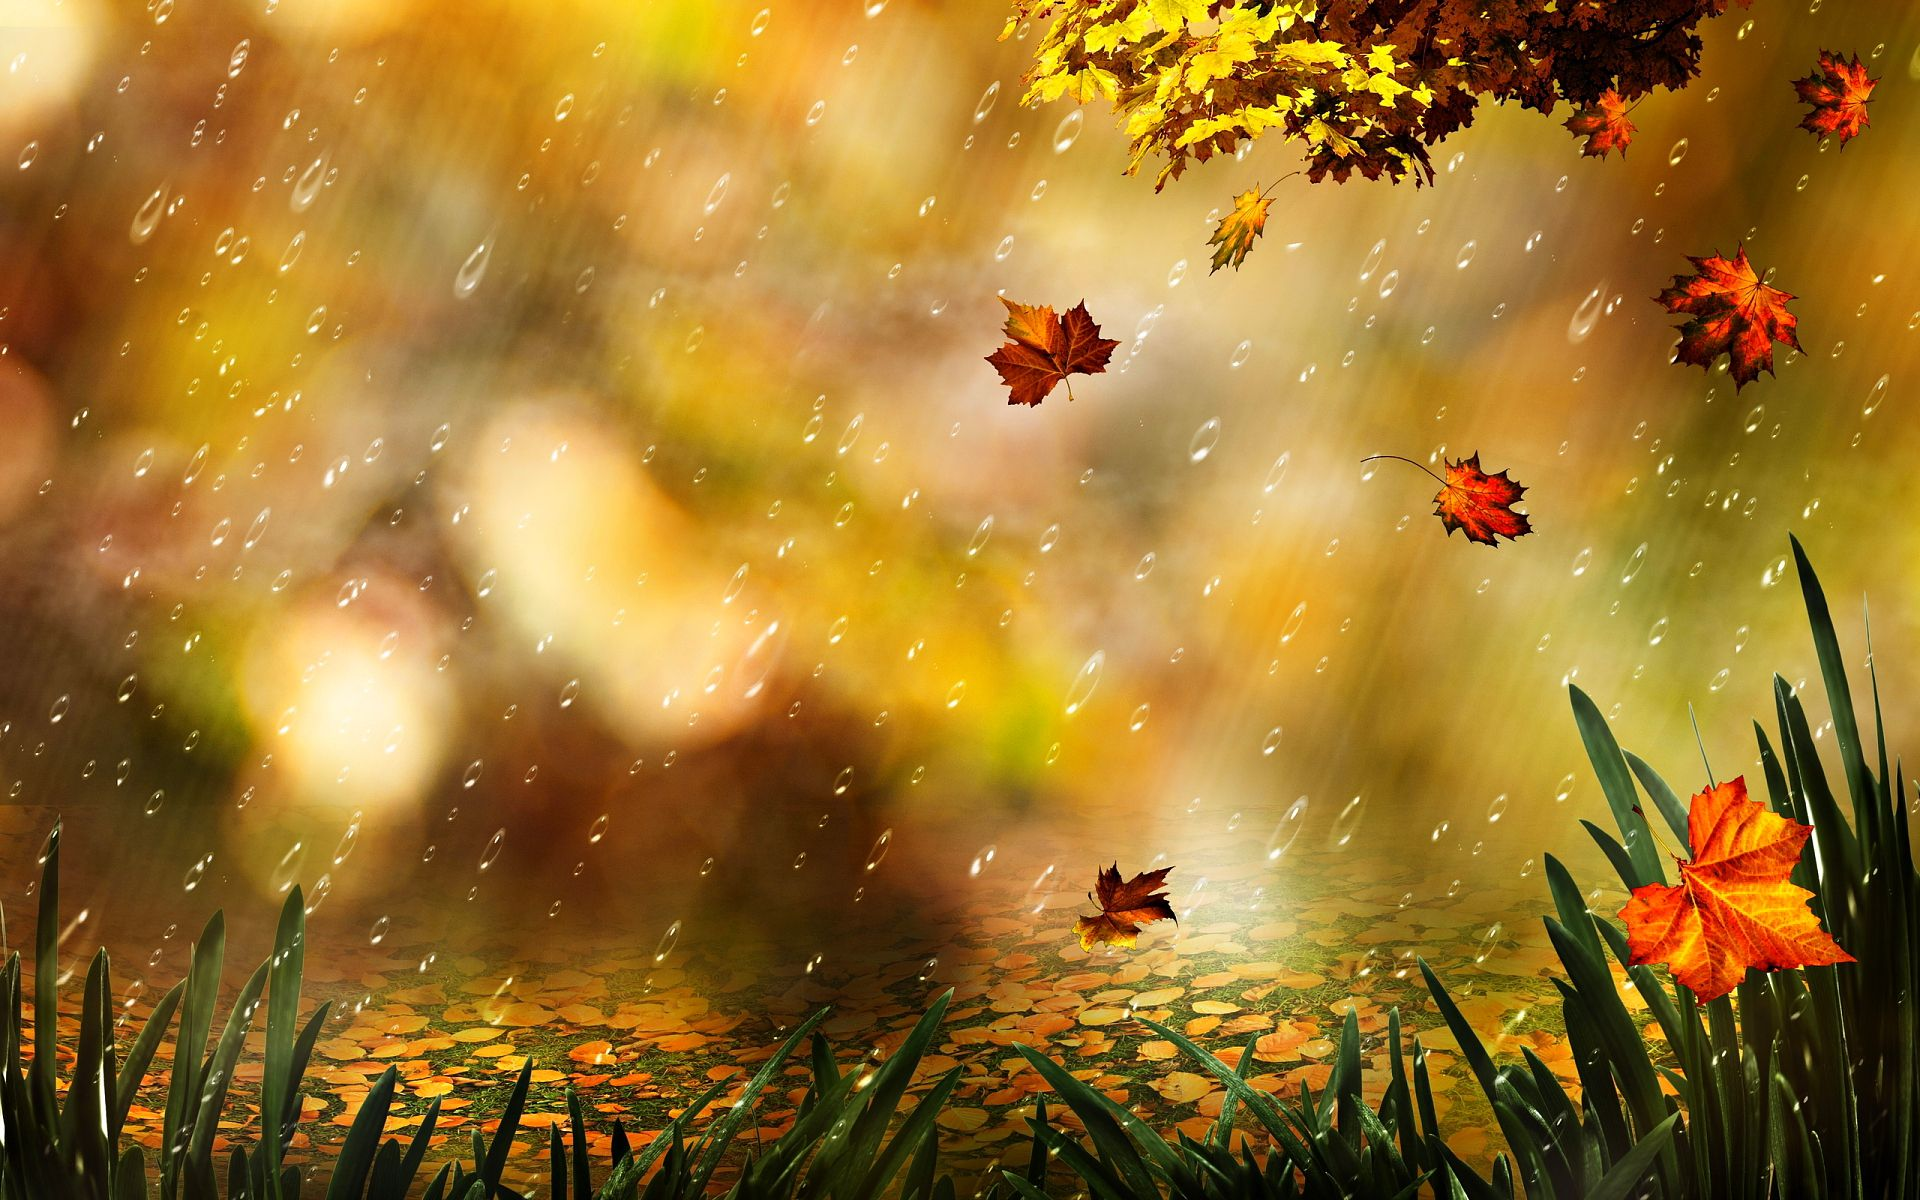 Autumn Rain Desktop Background Wallpapers Hd Free 574271 Leaf Artwork Autumn Rain Rain Wallpapers